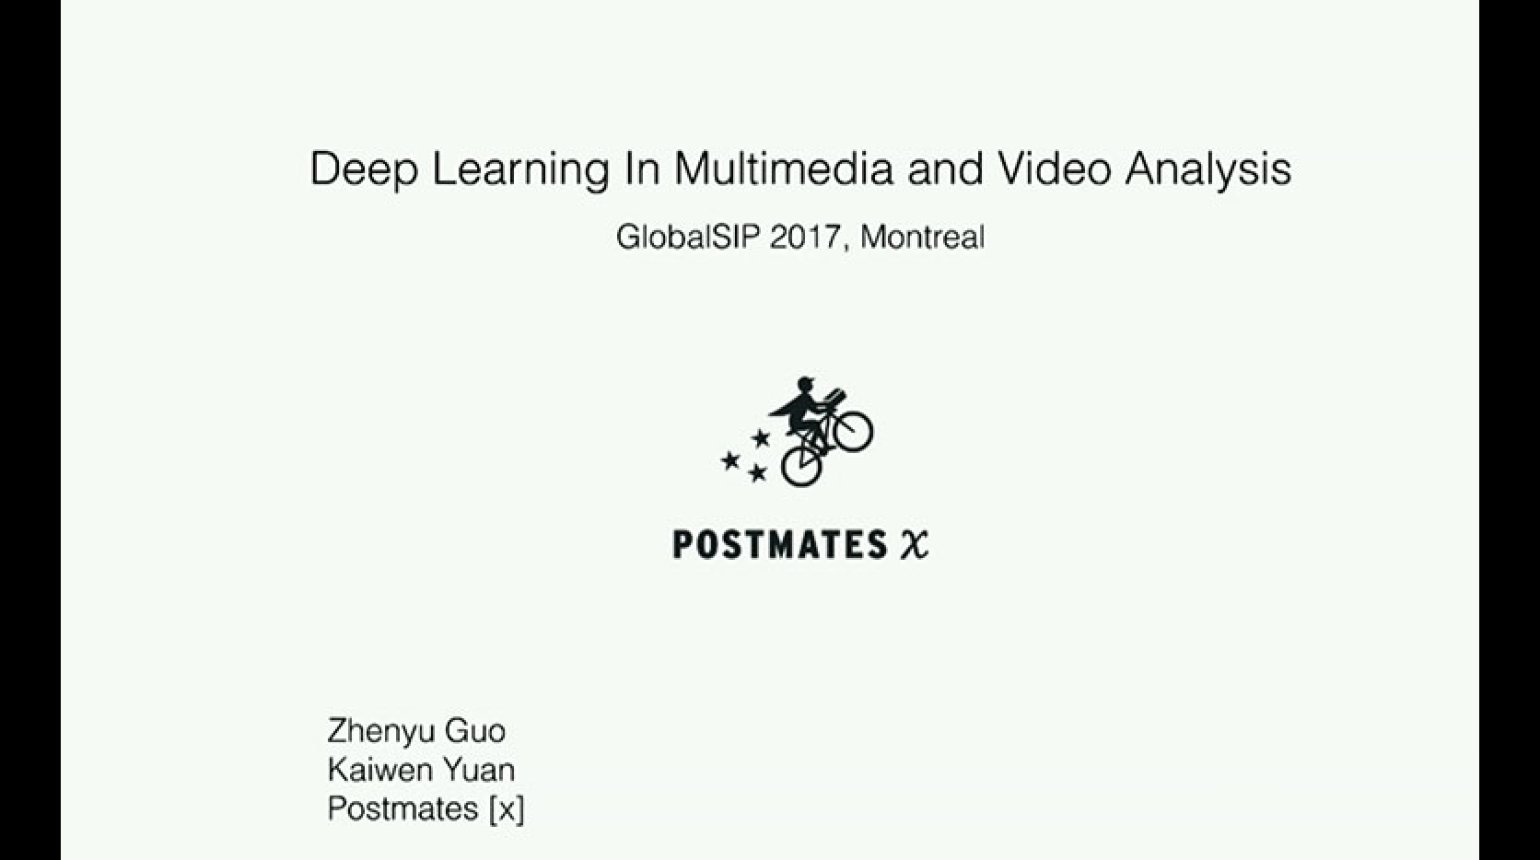 IEEE GlobalSIP 2017 Tutorial: Deep Learning in Multimedia and Video Analysis